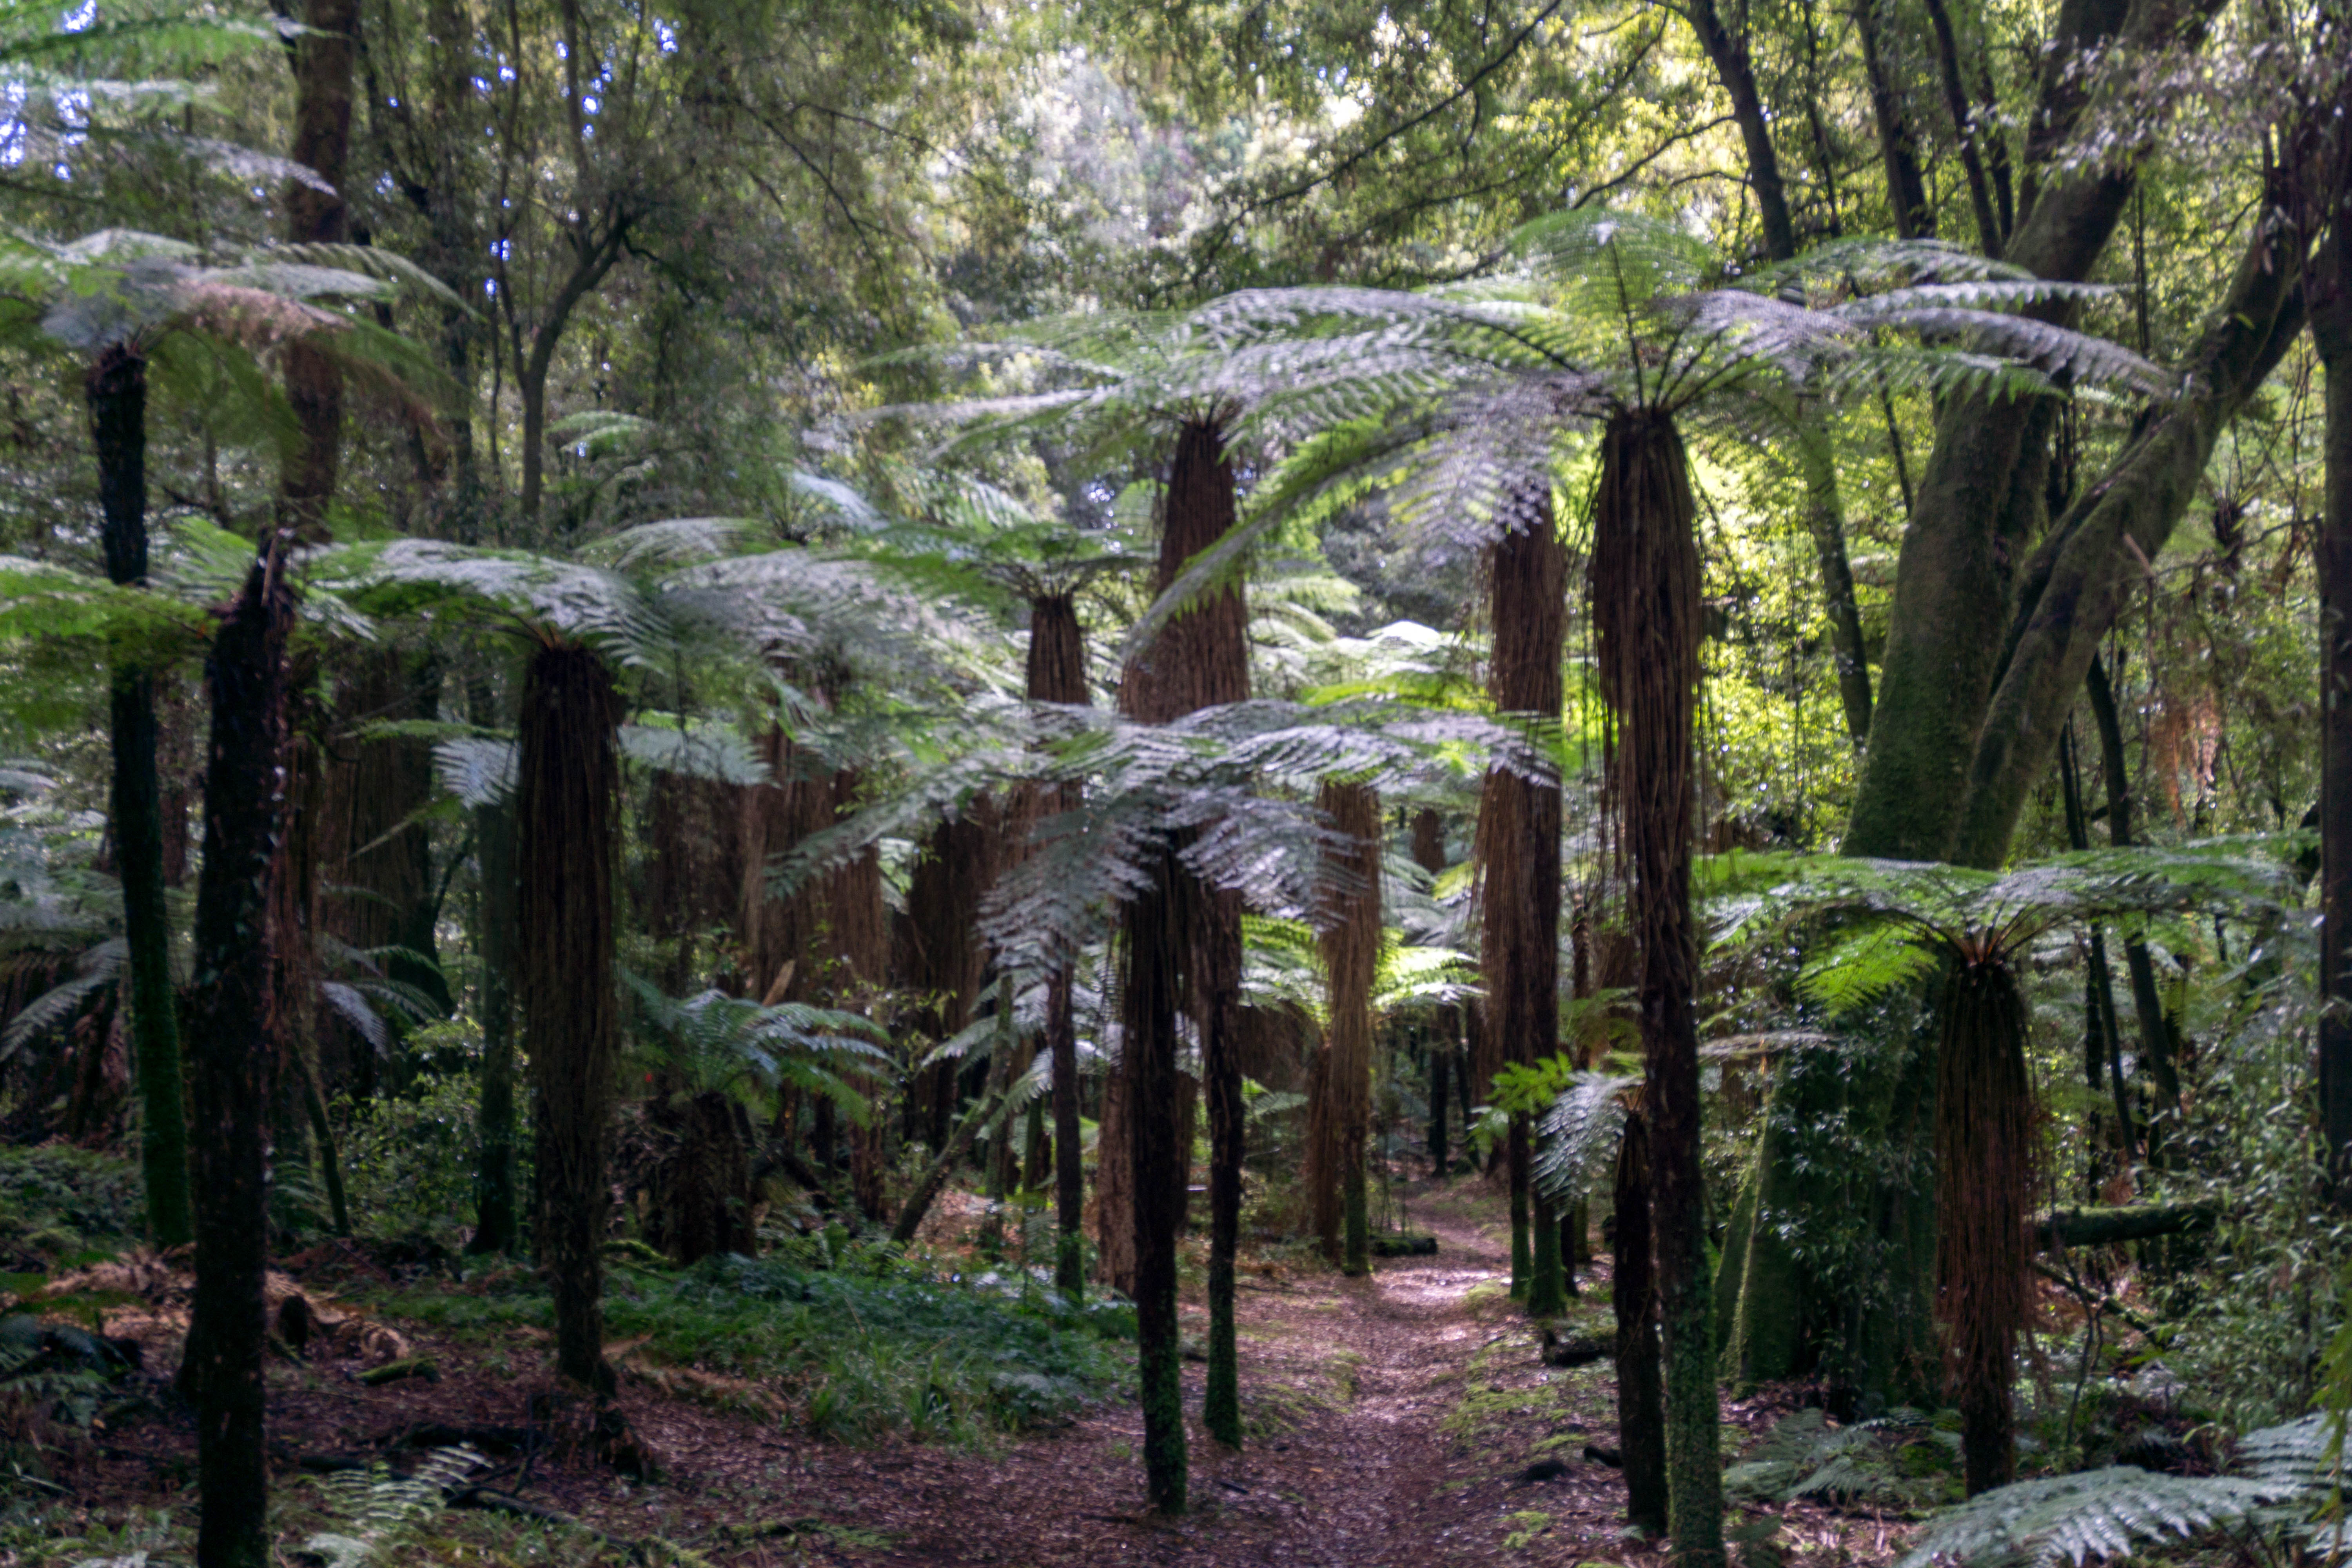 Fern Trees along the Waiatiu Falls track in the Whirinaki Forest